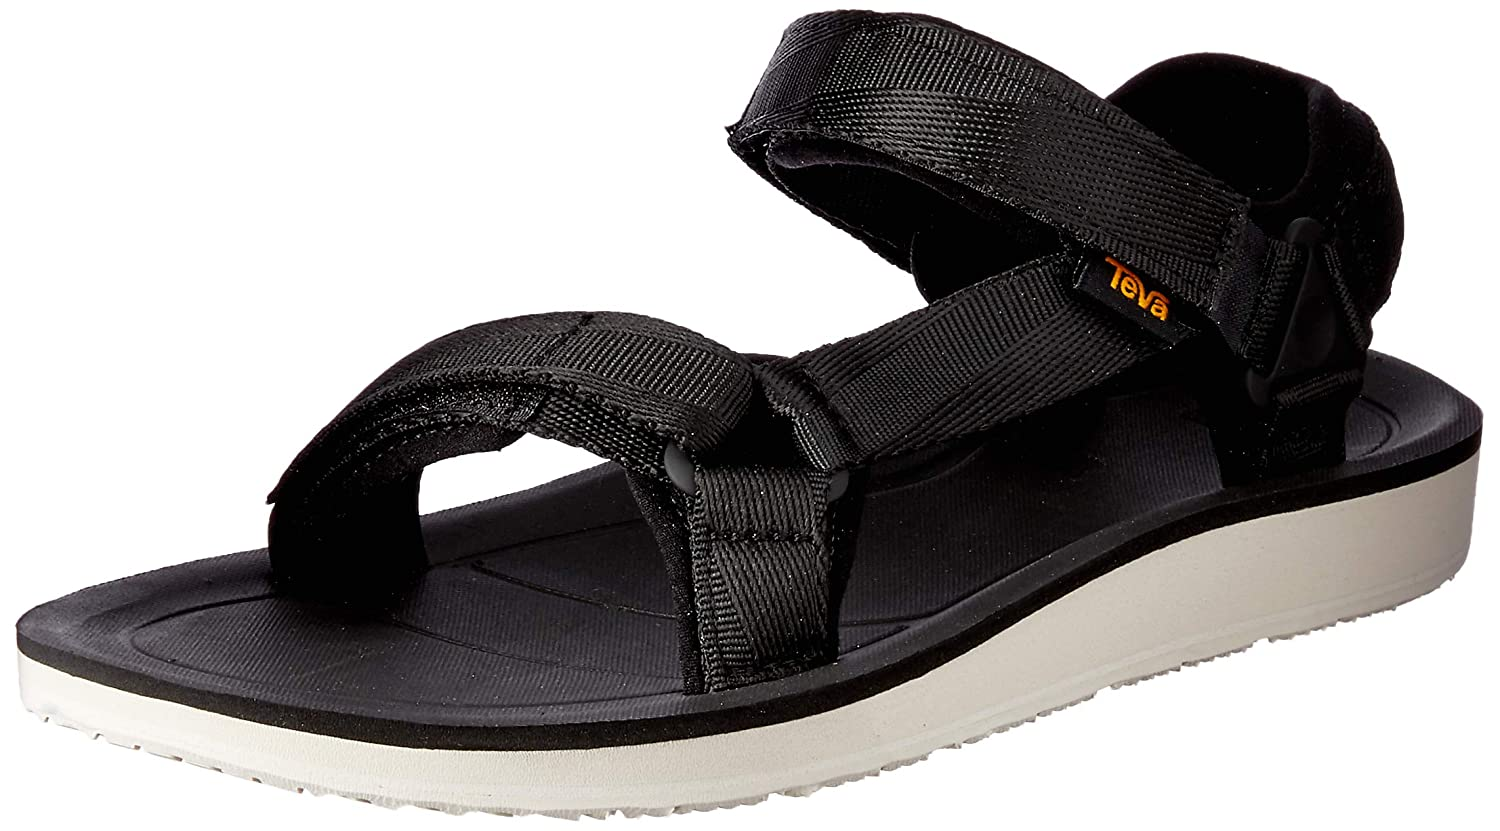 d9b708f8933319 Amazon.com | Teva Original Universal Premier Sandal - Women's Hiking Black  | Sport Sandals & Slides